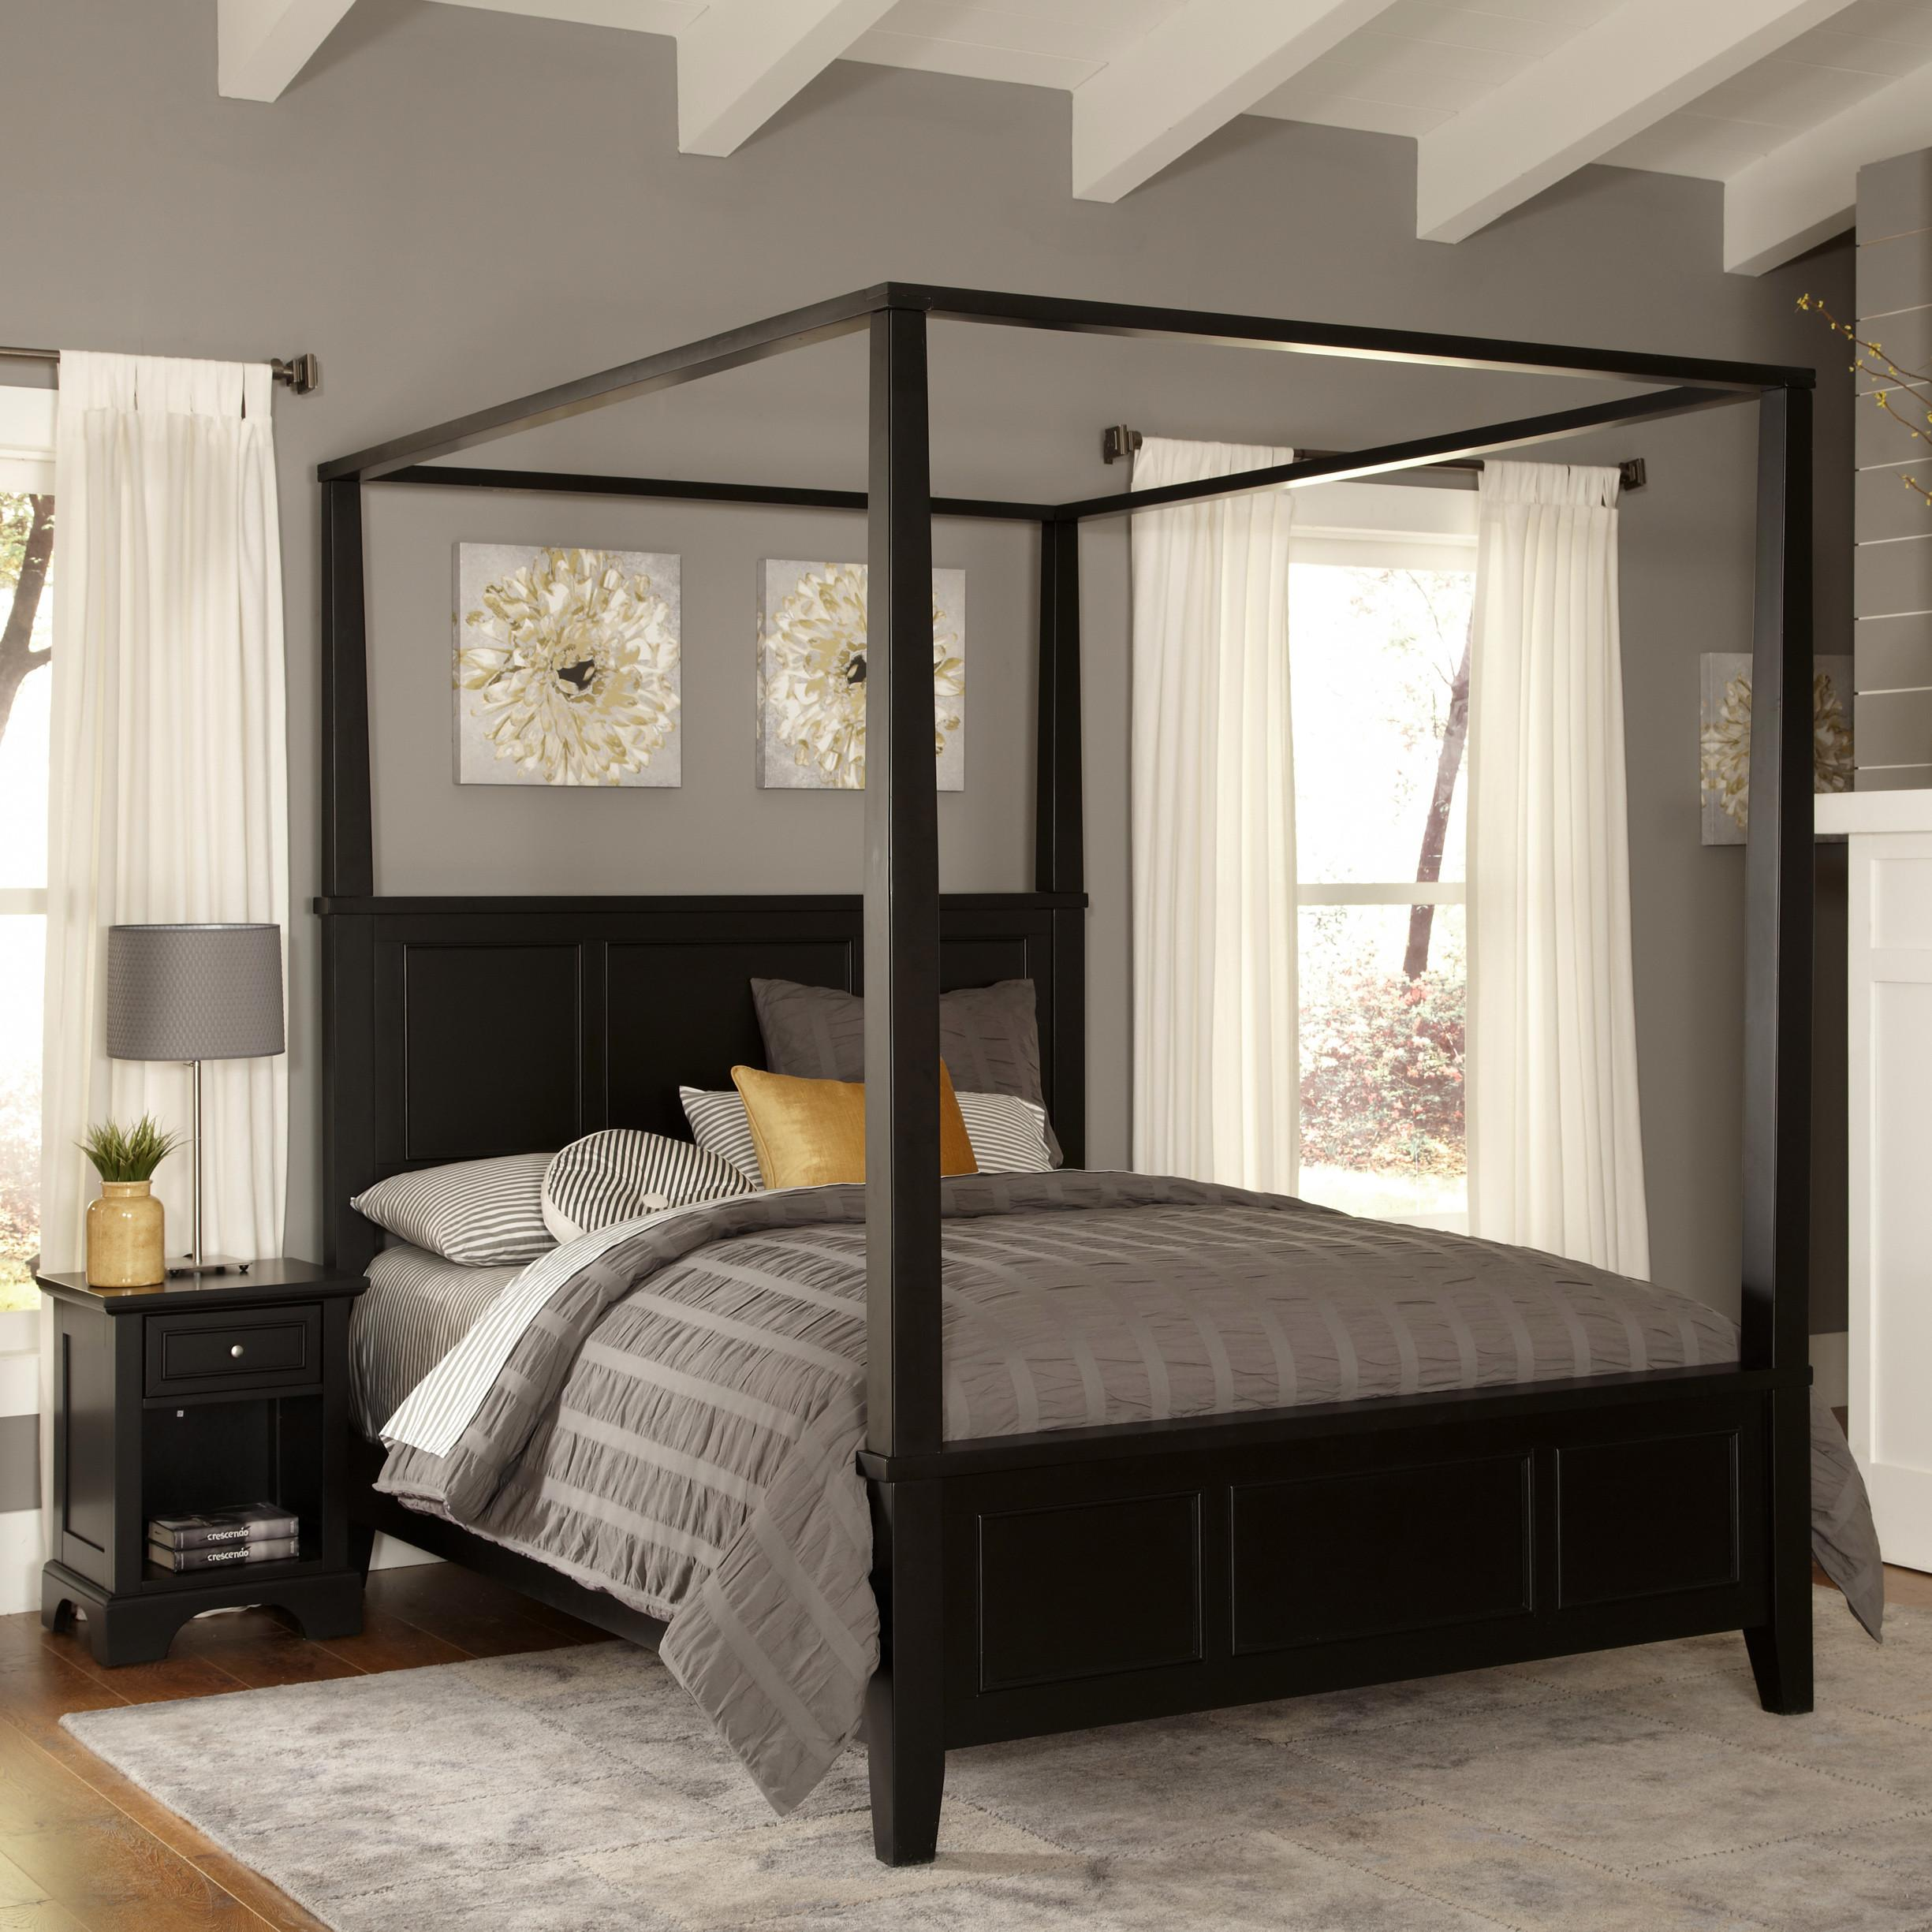 Stunning Bedrooms Flaunting Decorative Canopy Beds Metal